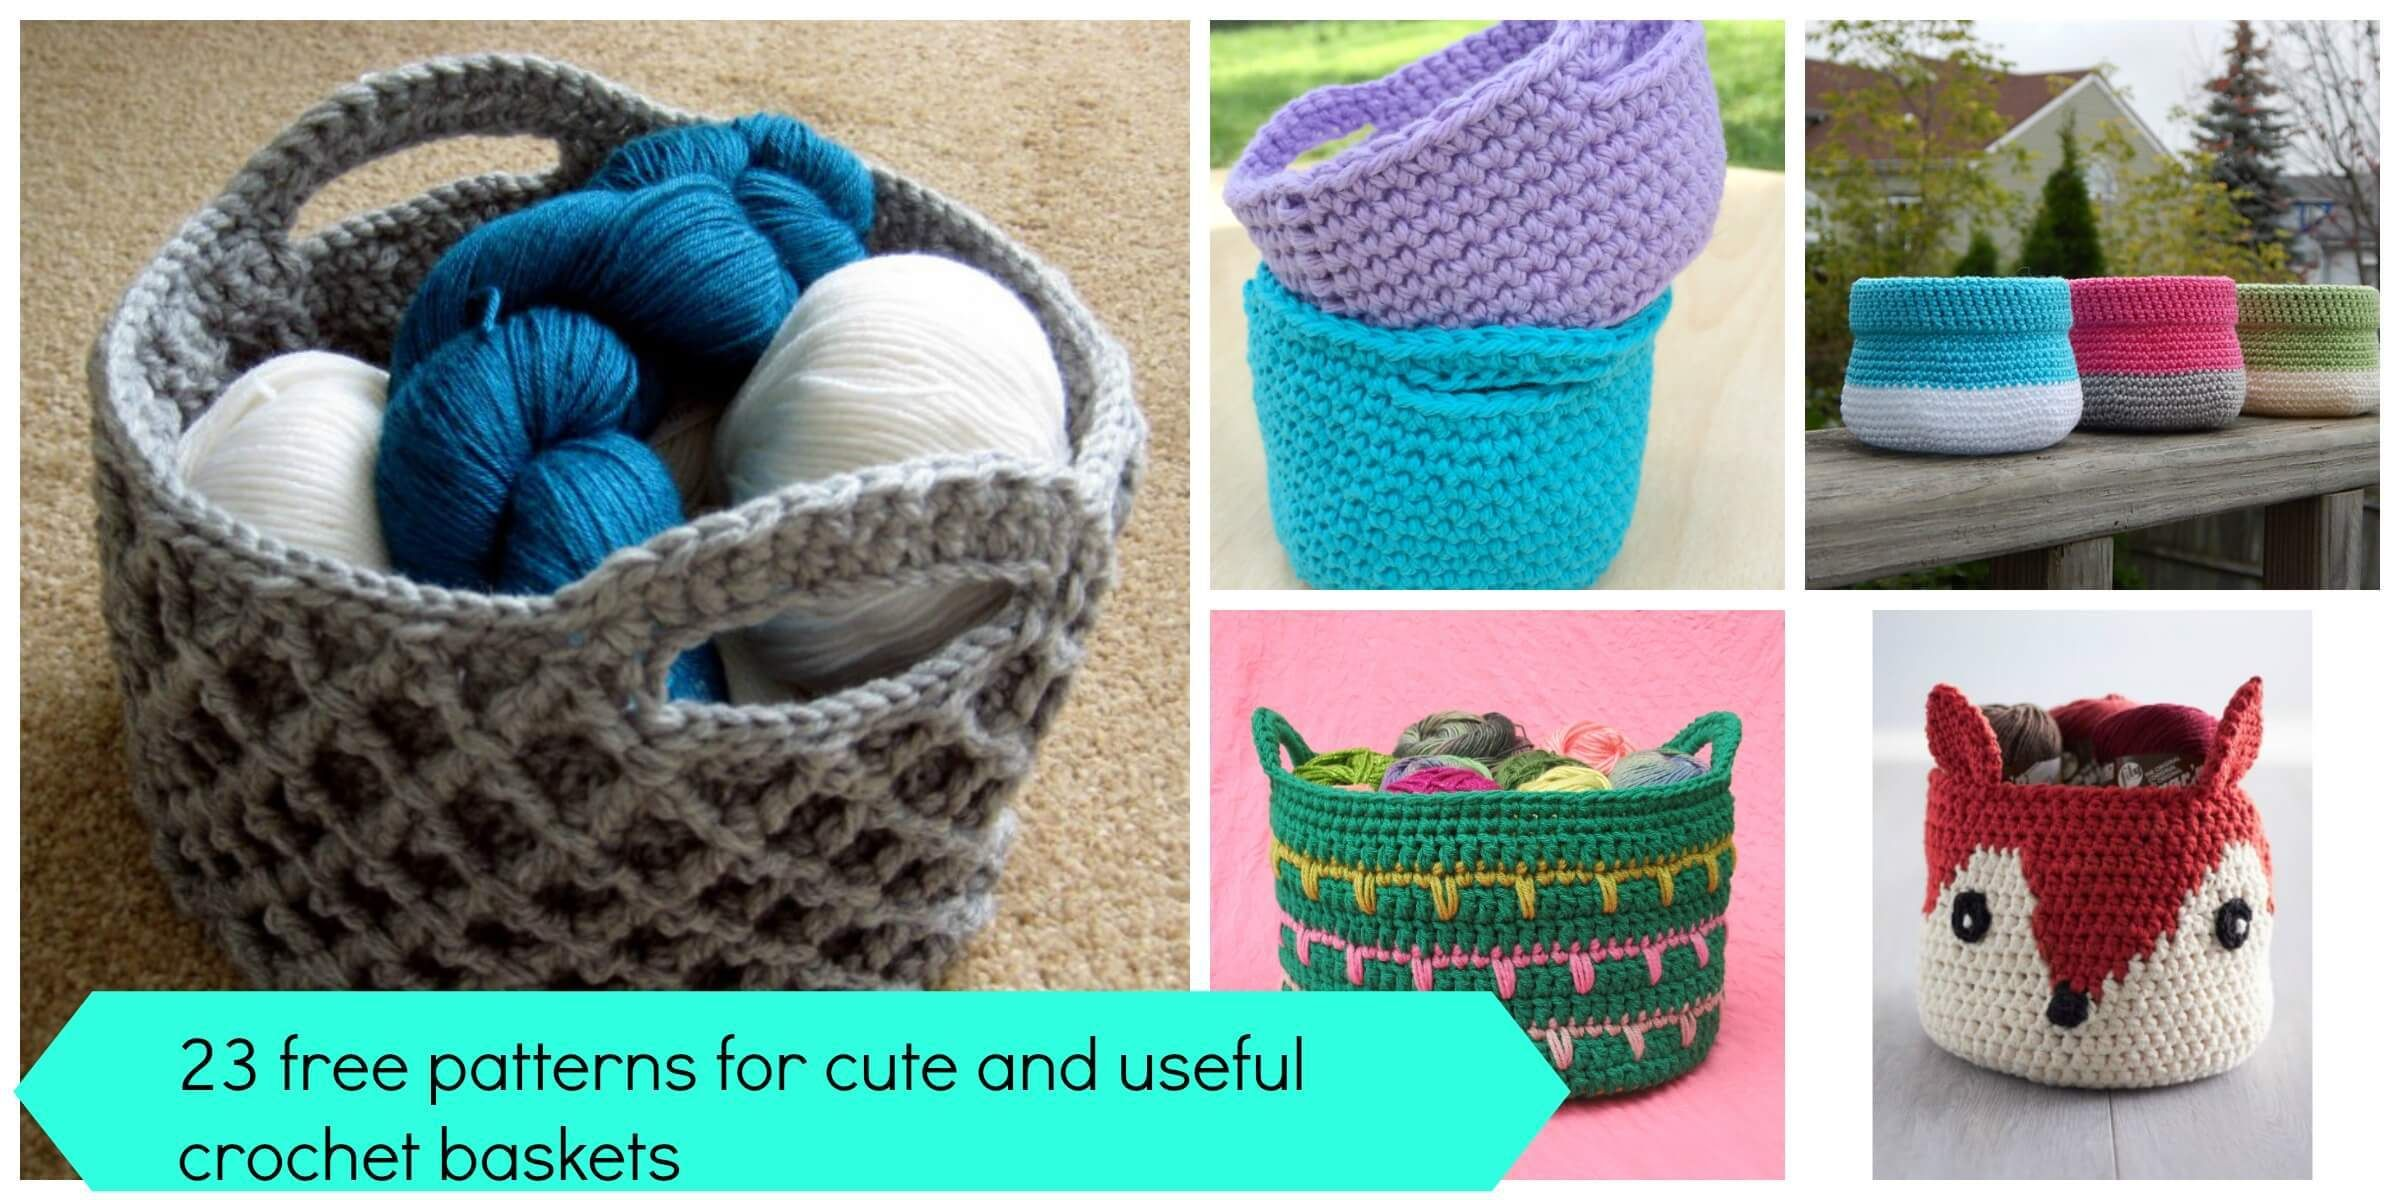 23 free patterns for cute and useful crochet baskets | Crochet ...